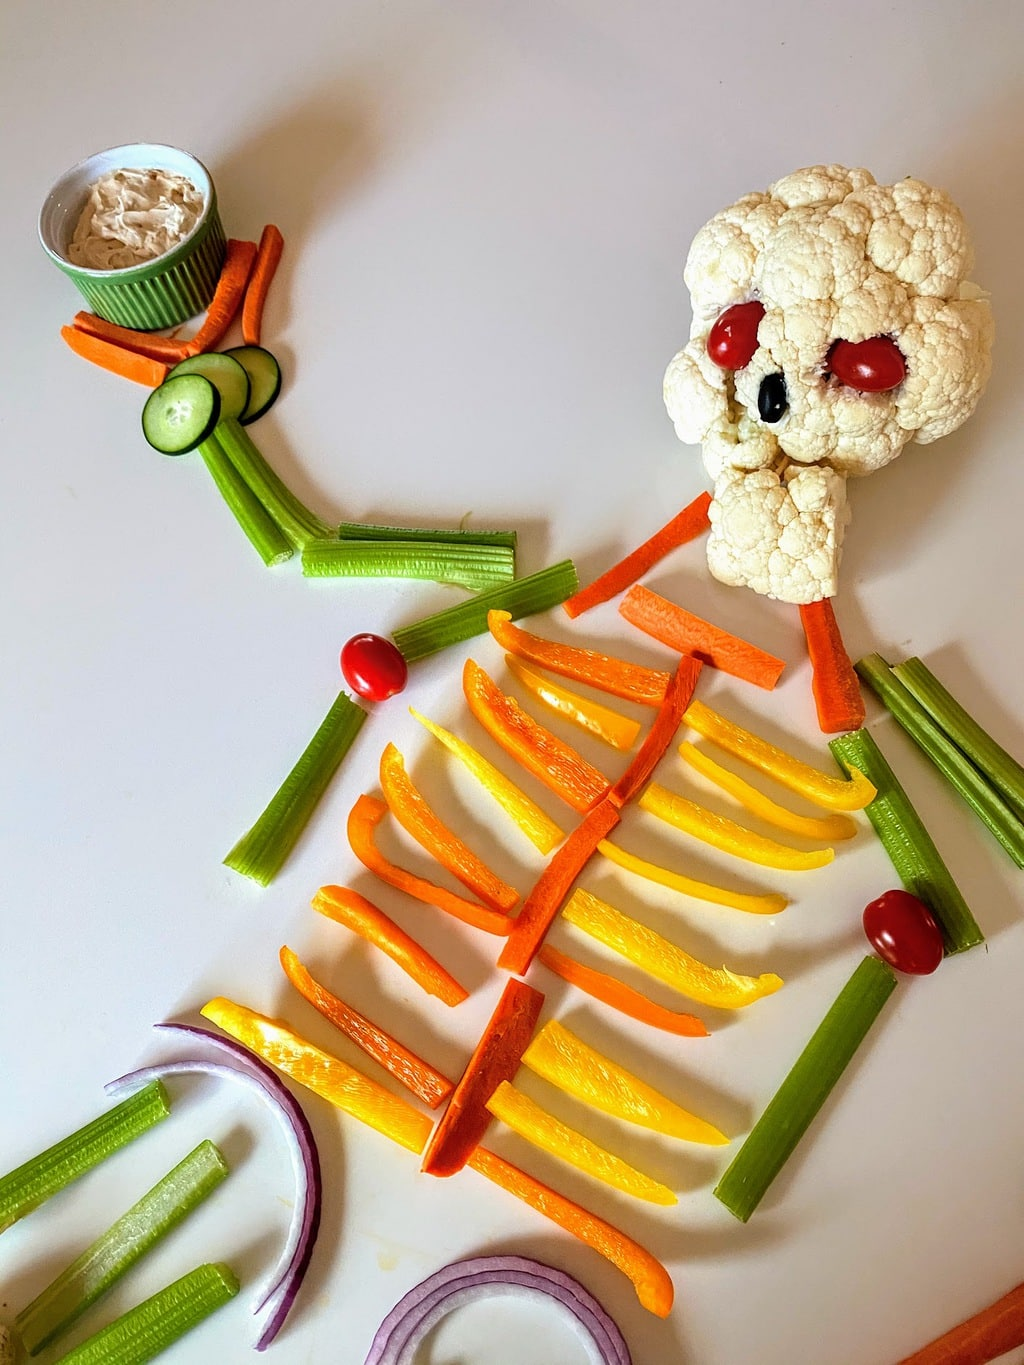 skeleton made of vegetables, with a cauliflower skull, holding a bowl of dip